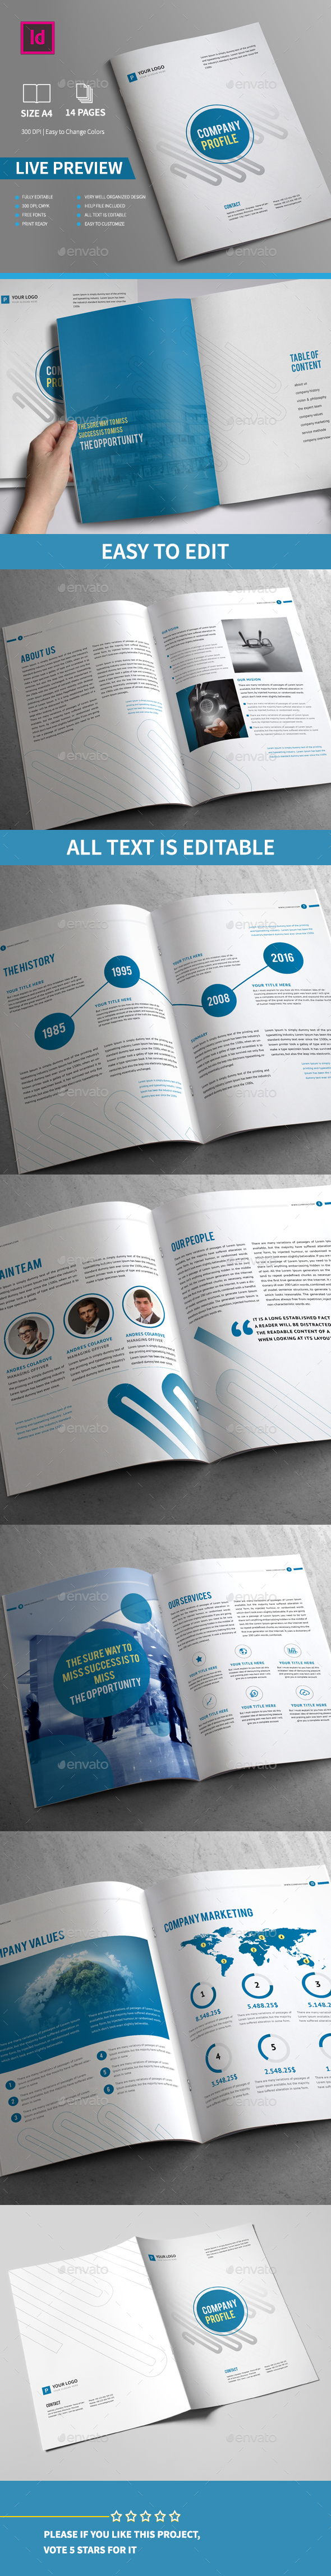 Company Profile Brochure 14 Pages A4 - Corporate Brochures